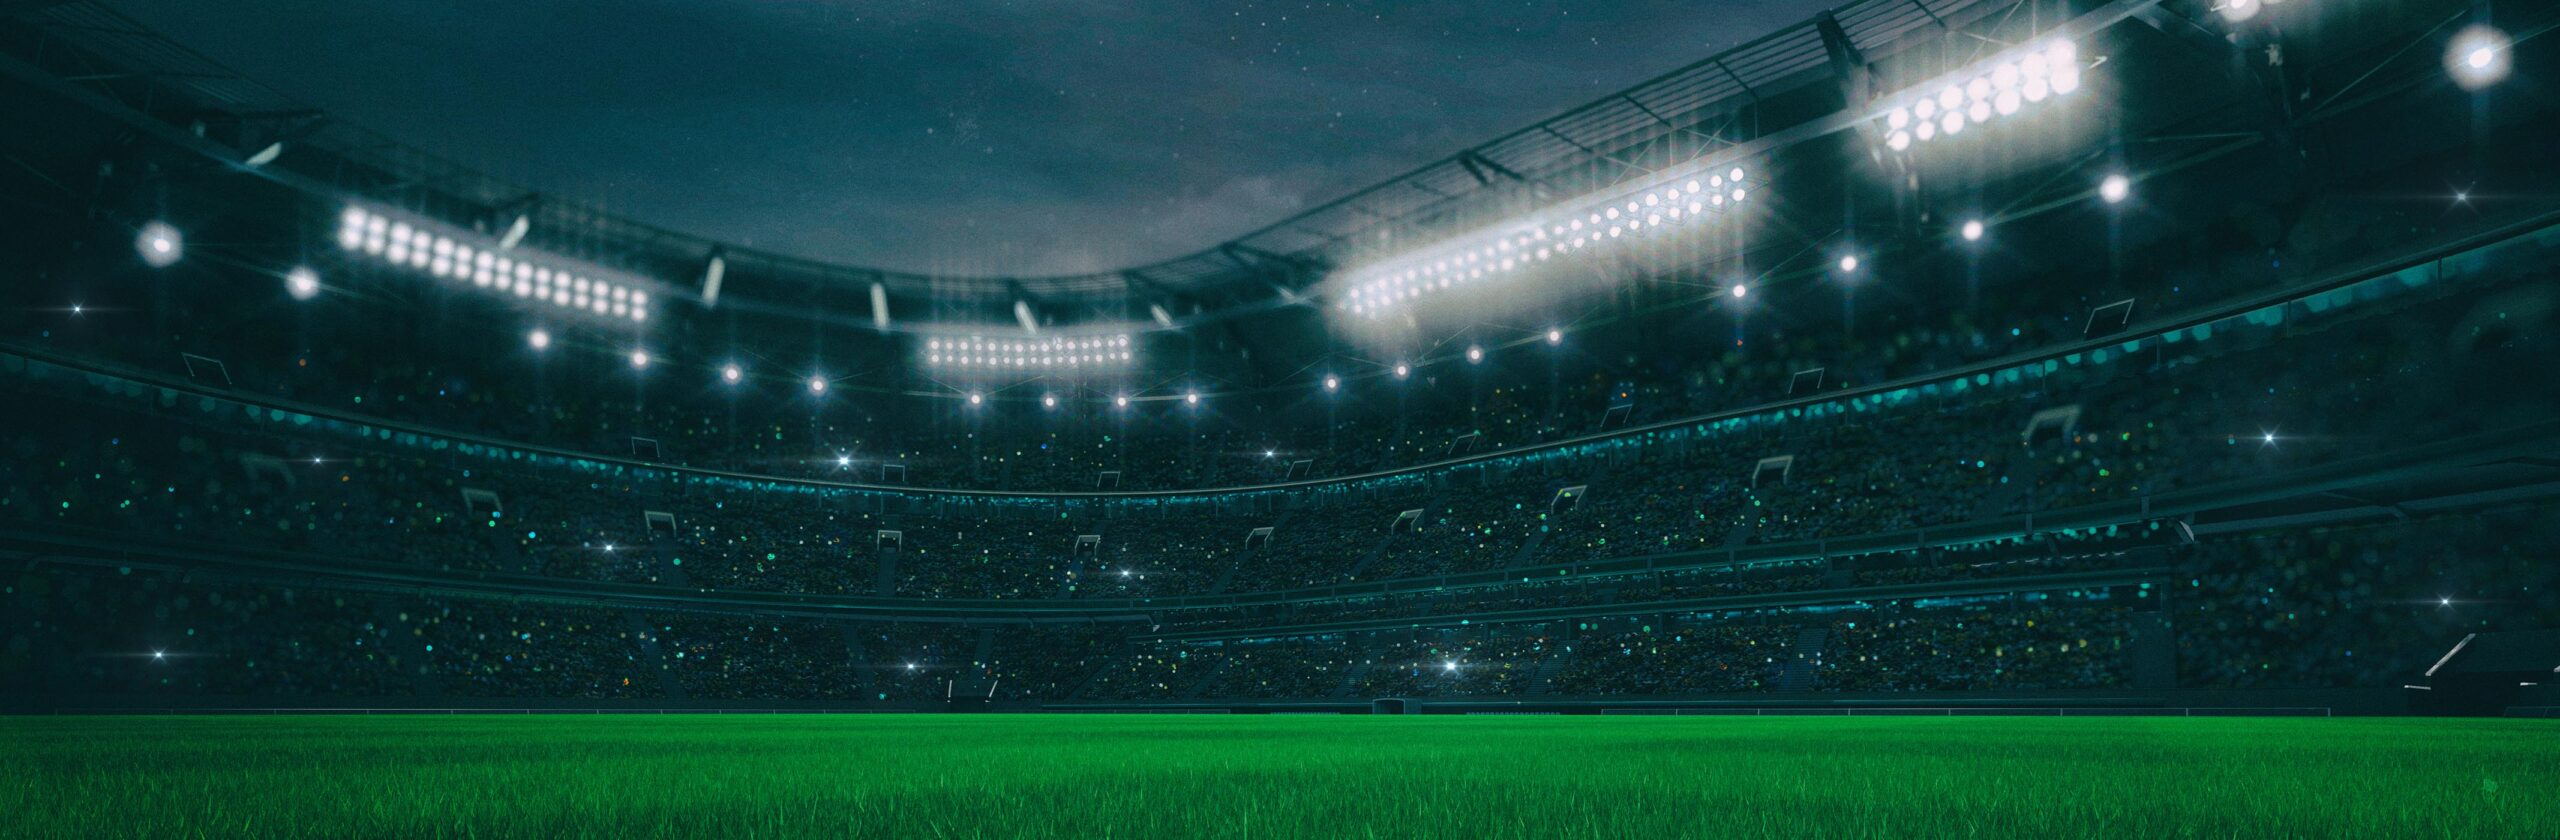 Digital 3D illustration of Sport stadium at night